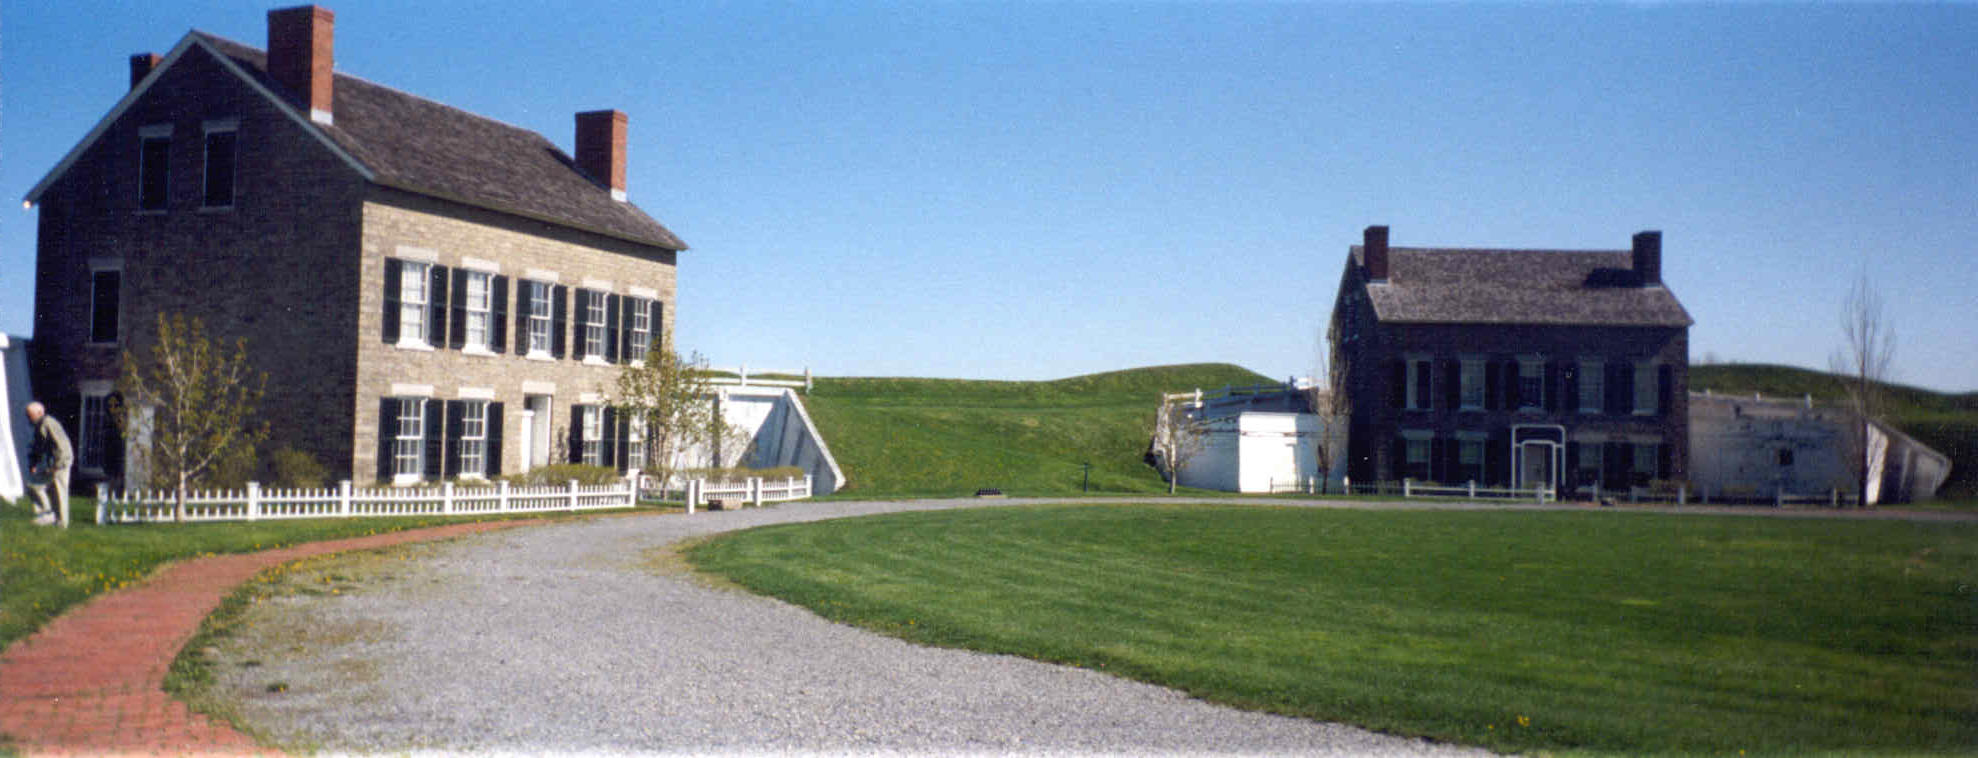 Fort Niagara near Youngtown, New York (Photo by Roy V. Ashley)